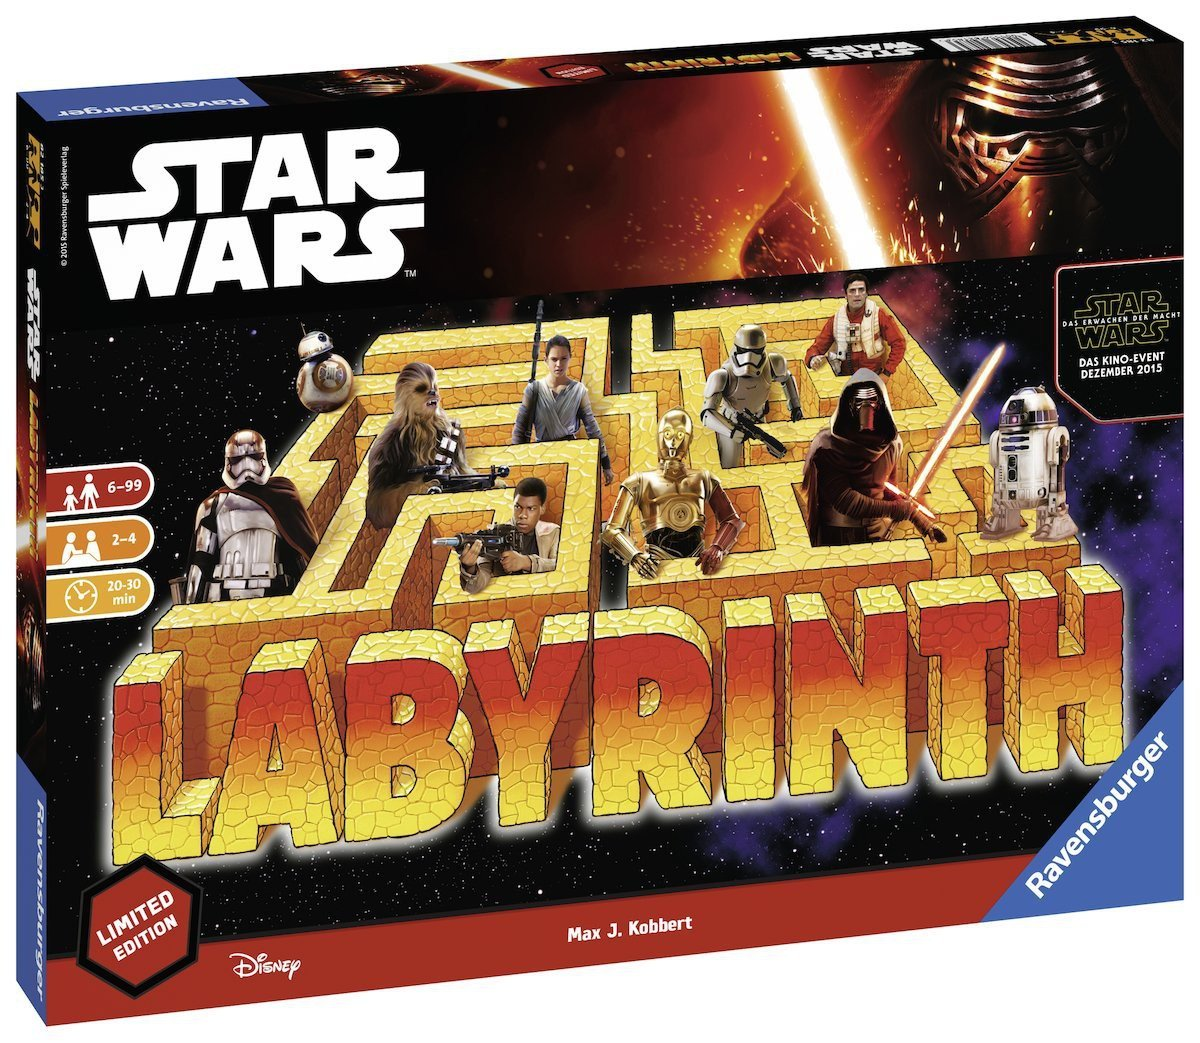 Labyrinthestarwarslimitee